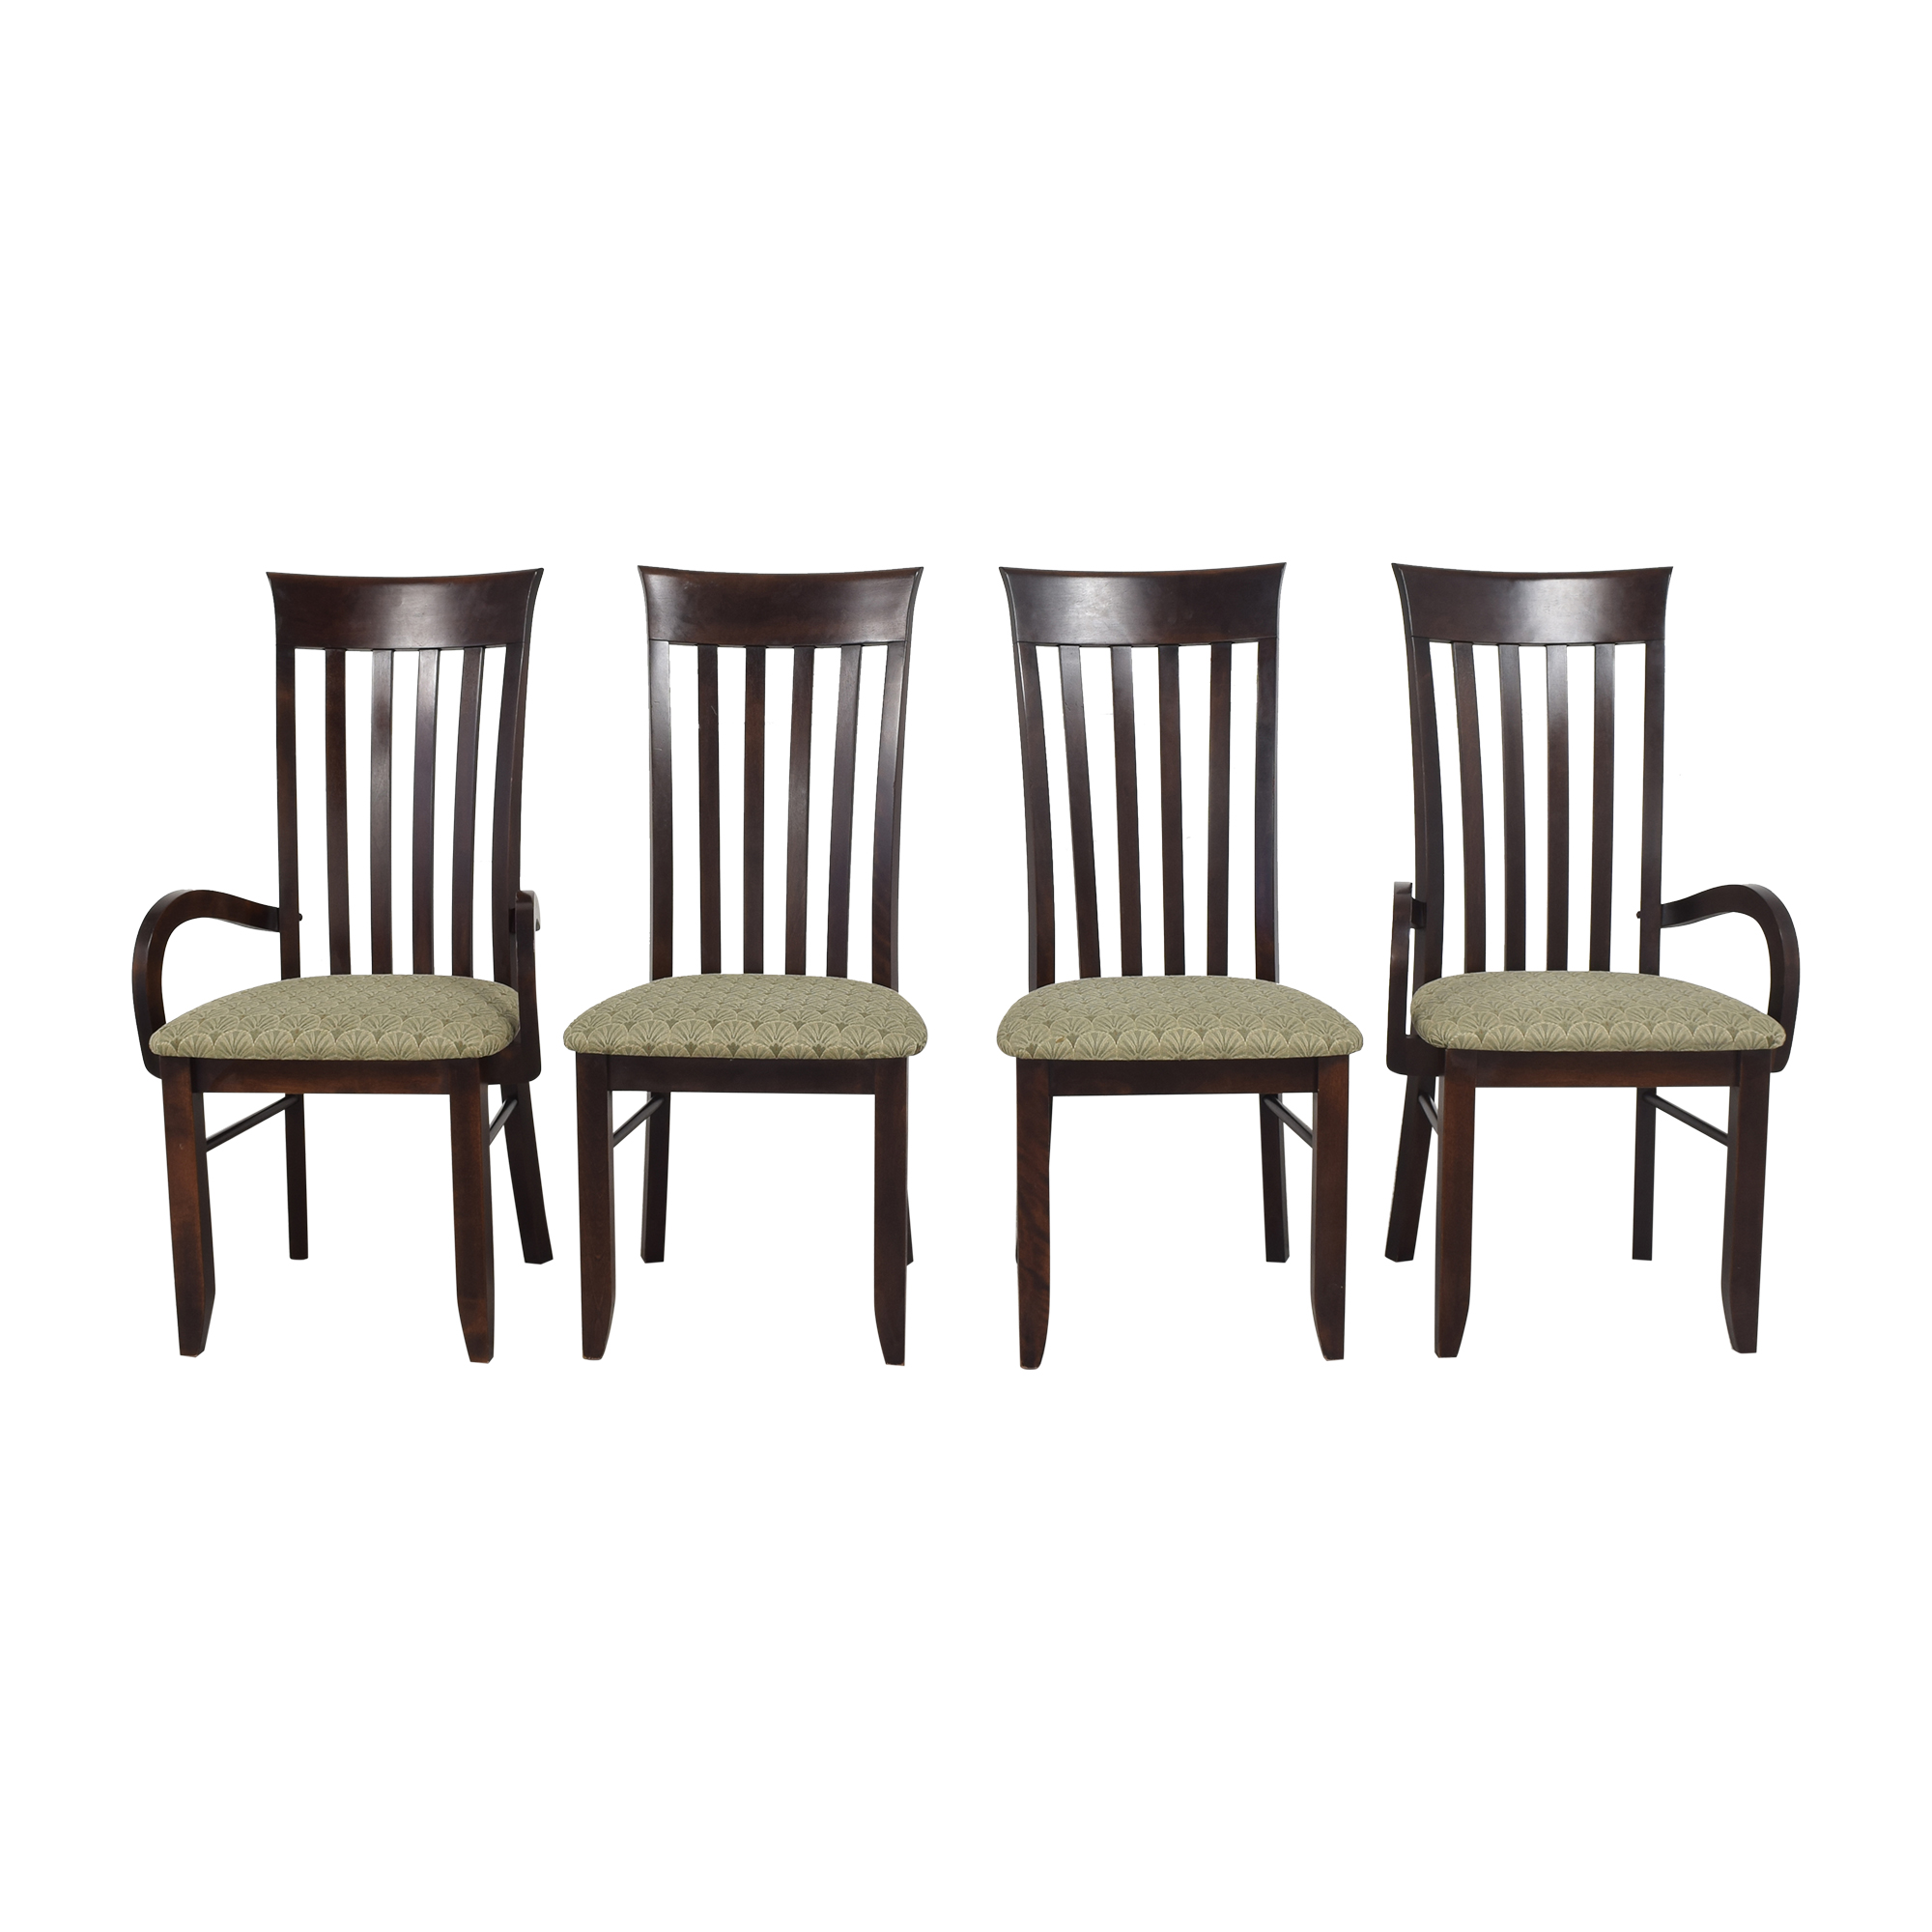 Canadel Canadel Upholstered Dining Chairs discount